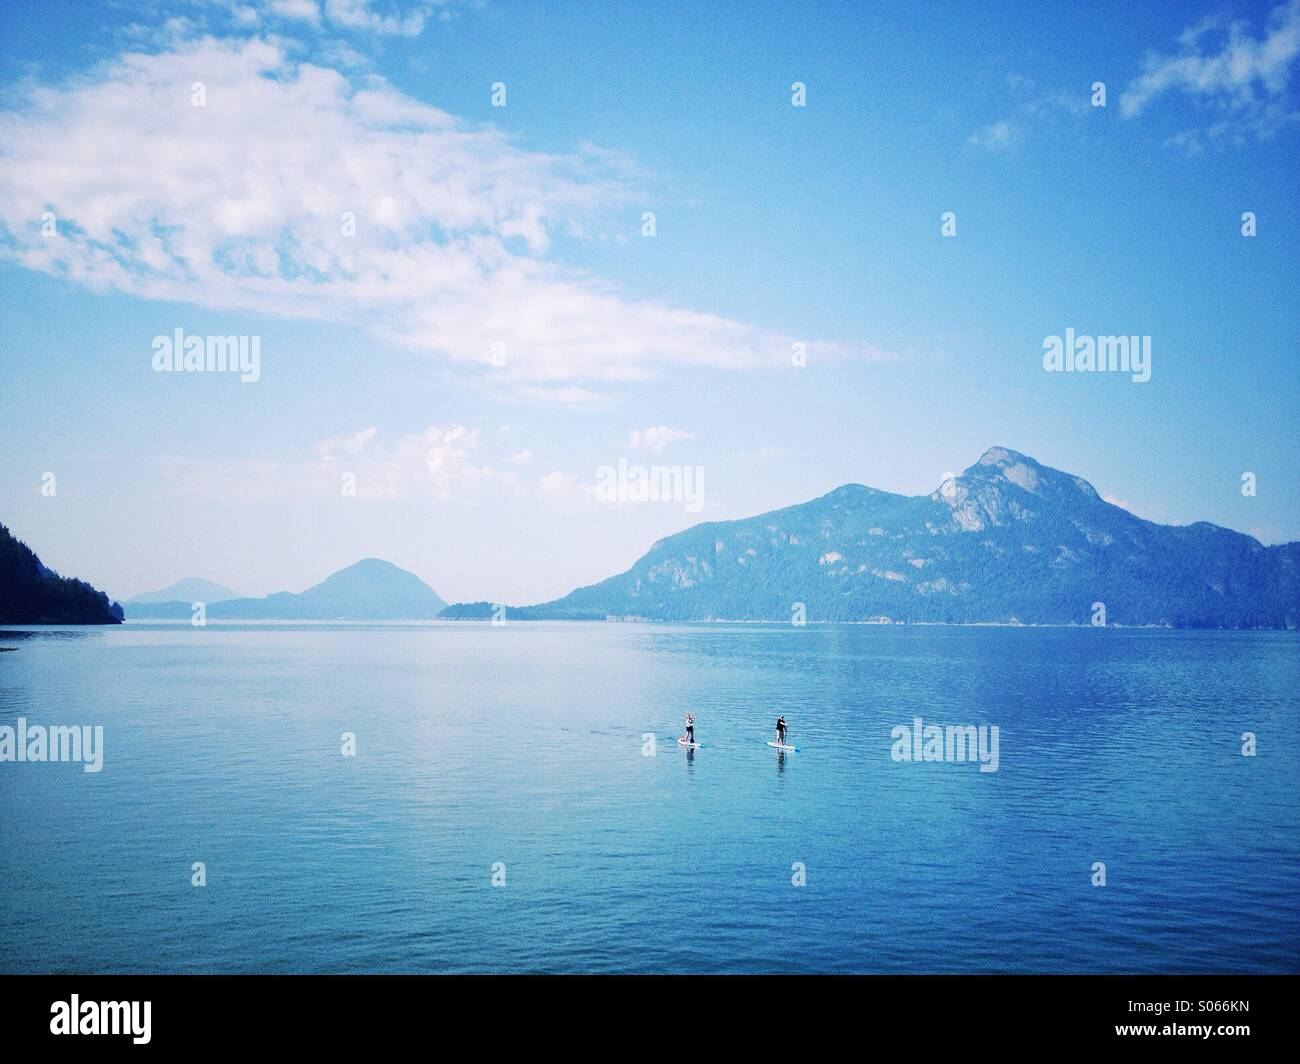 Stand up paddle boarders on Howe Sound, British Columbia with mountain background. - Stock Image